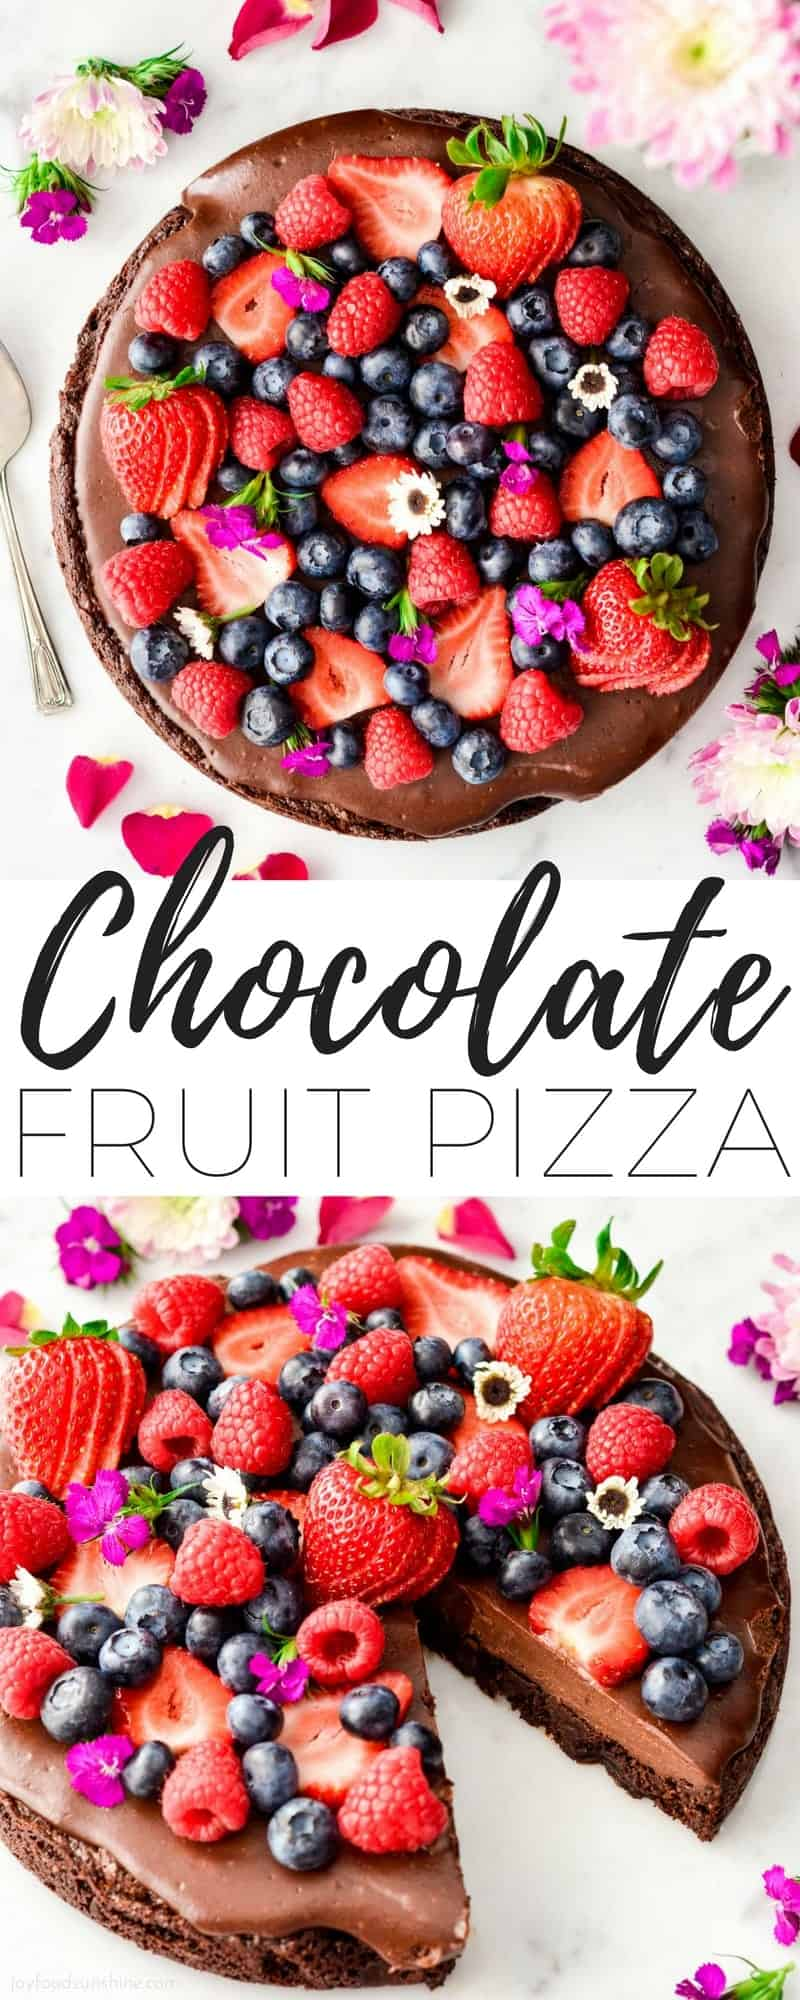 Paleo Chocolate Fruit Pizza with a Brownie Cookie Crust is a decadent yet healthy dessert recipe. A layer of silky-smooth chocolate topping is slathered over an irresistibly chocolatey crust that's a cross between a brownie and a cookie, and topped with fresh berries. It's gluten-free & dairy-free and has no refined sugar but no one would ever guess that it's good for you! #paleo #fruitpizza #chocolate #berries #dessert #dairyfree #glutenfree #grainfree #refinedsugarfree